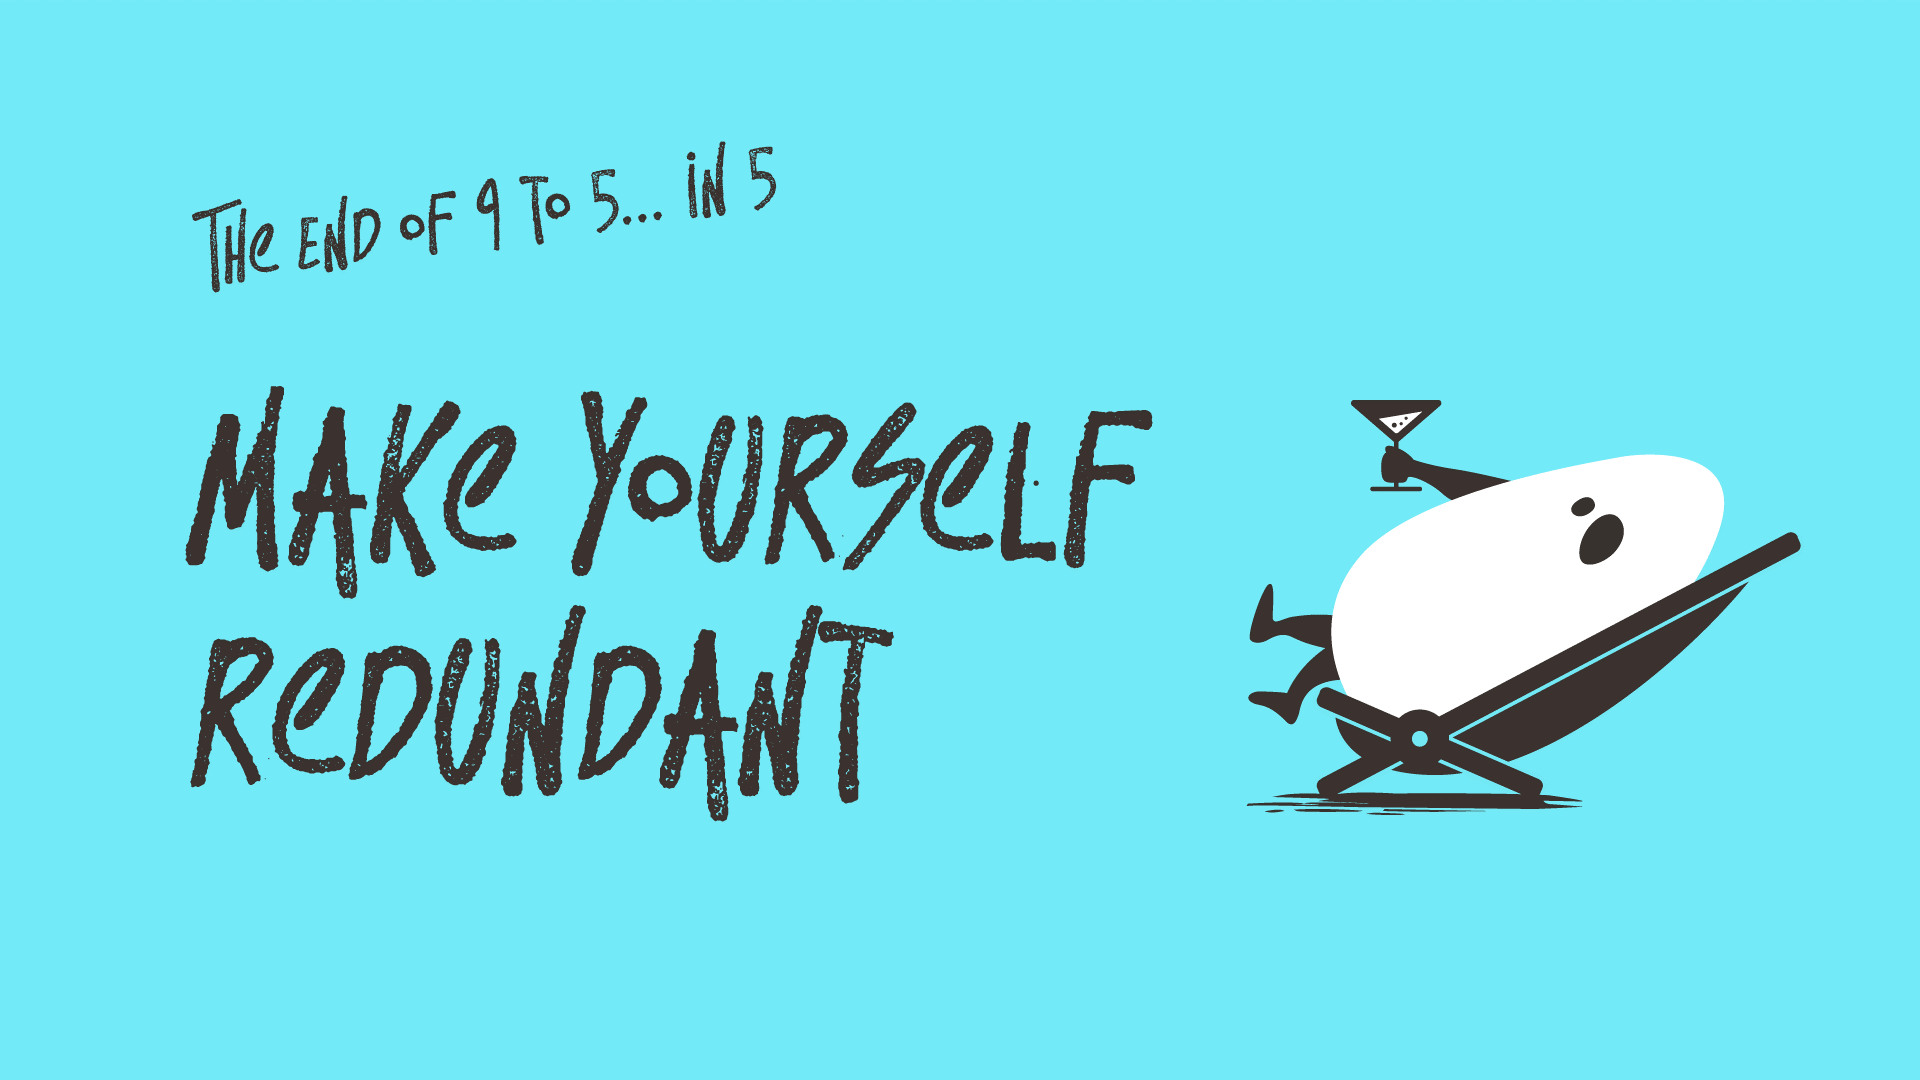 Make Yourself Redundant